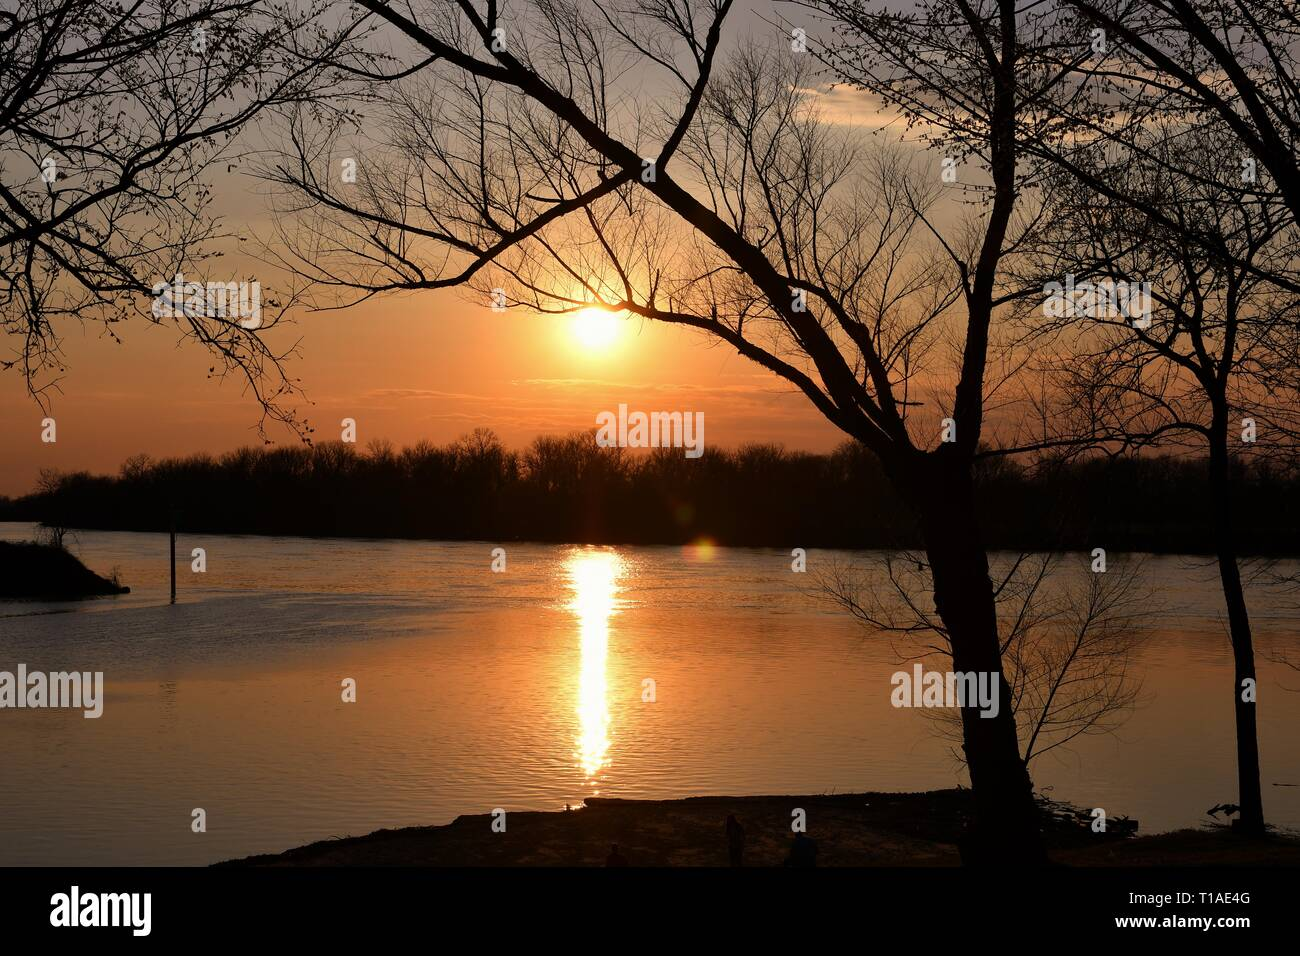 Sunset with silhouette trees from Fort Smith, AR looking over the Arkansas River into Oklahoma Stock Photo